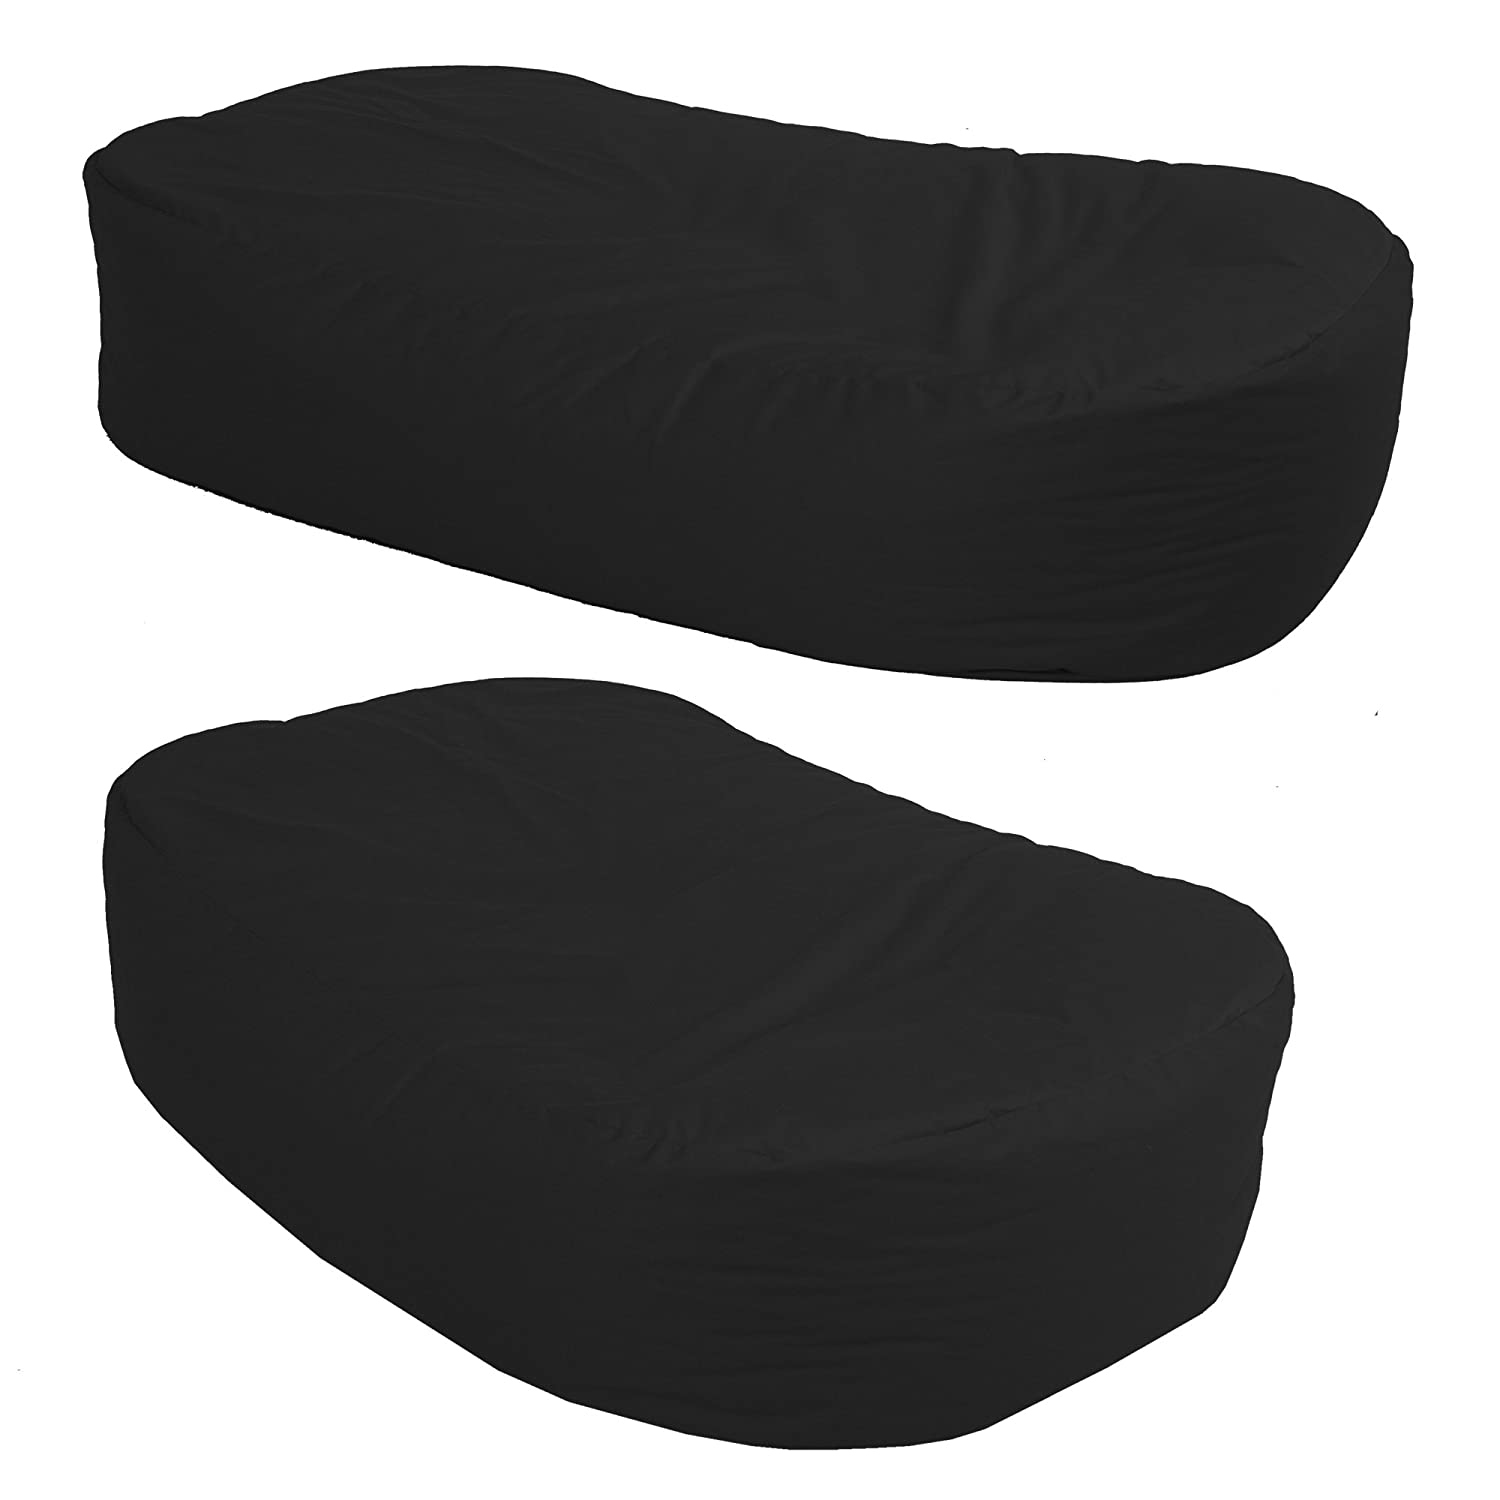 4FT BEANBAG SOFA Indoor Outdoor Giant Bean bag BLACK Amazon